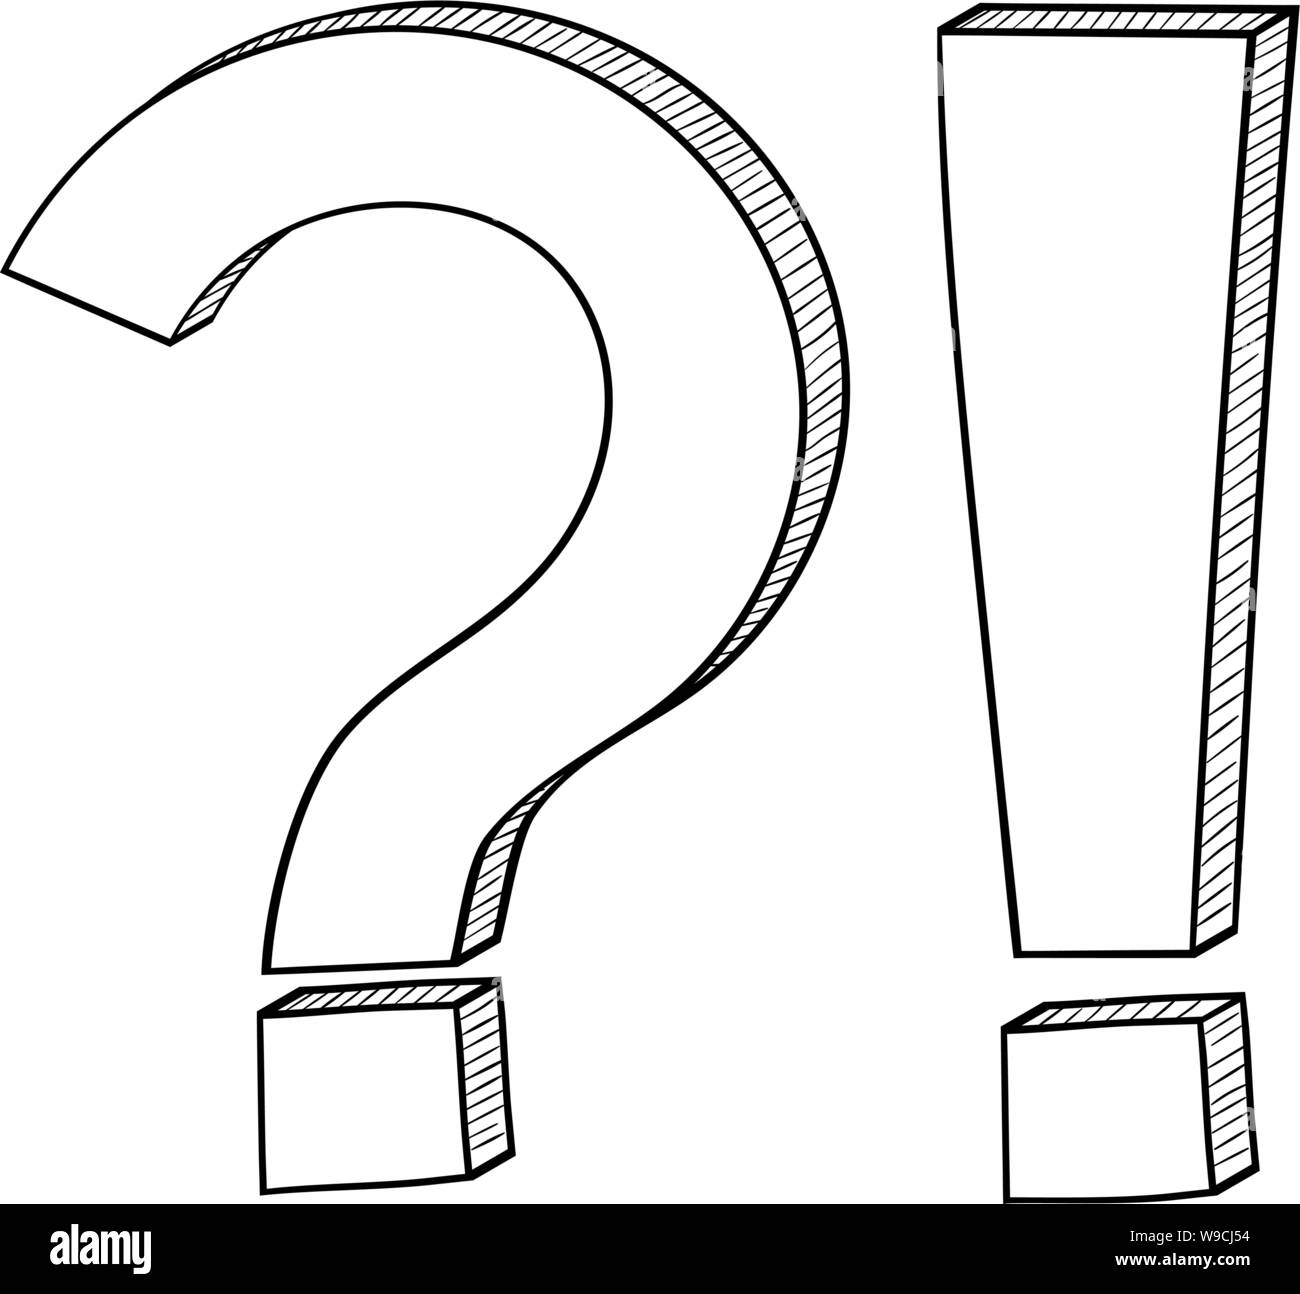 Question and Exlamation marks. Outline icon Stock Vector